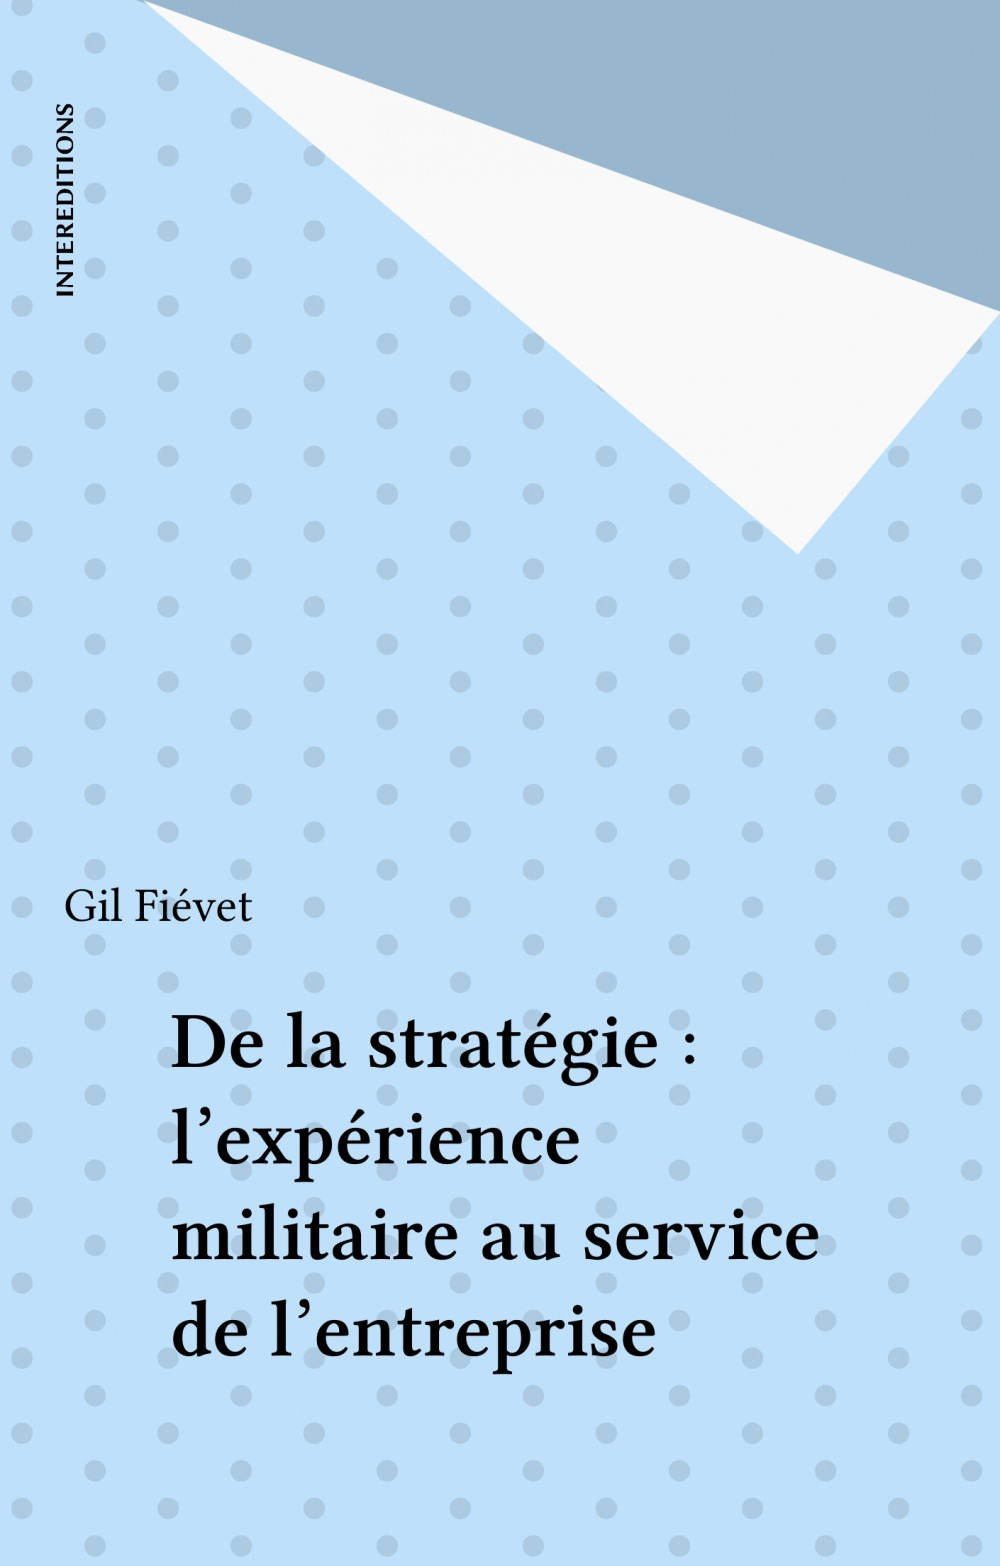 De la strategie